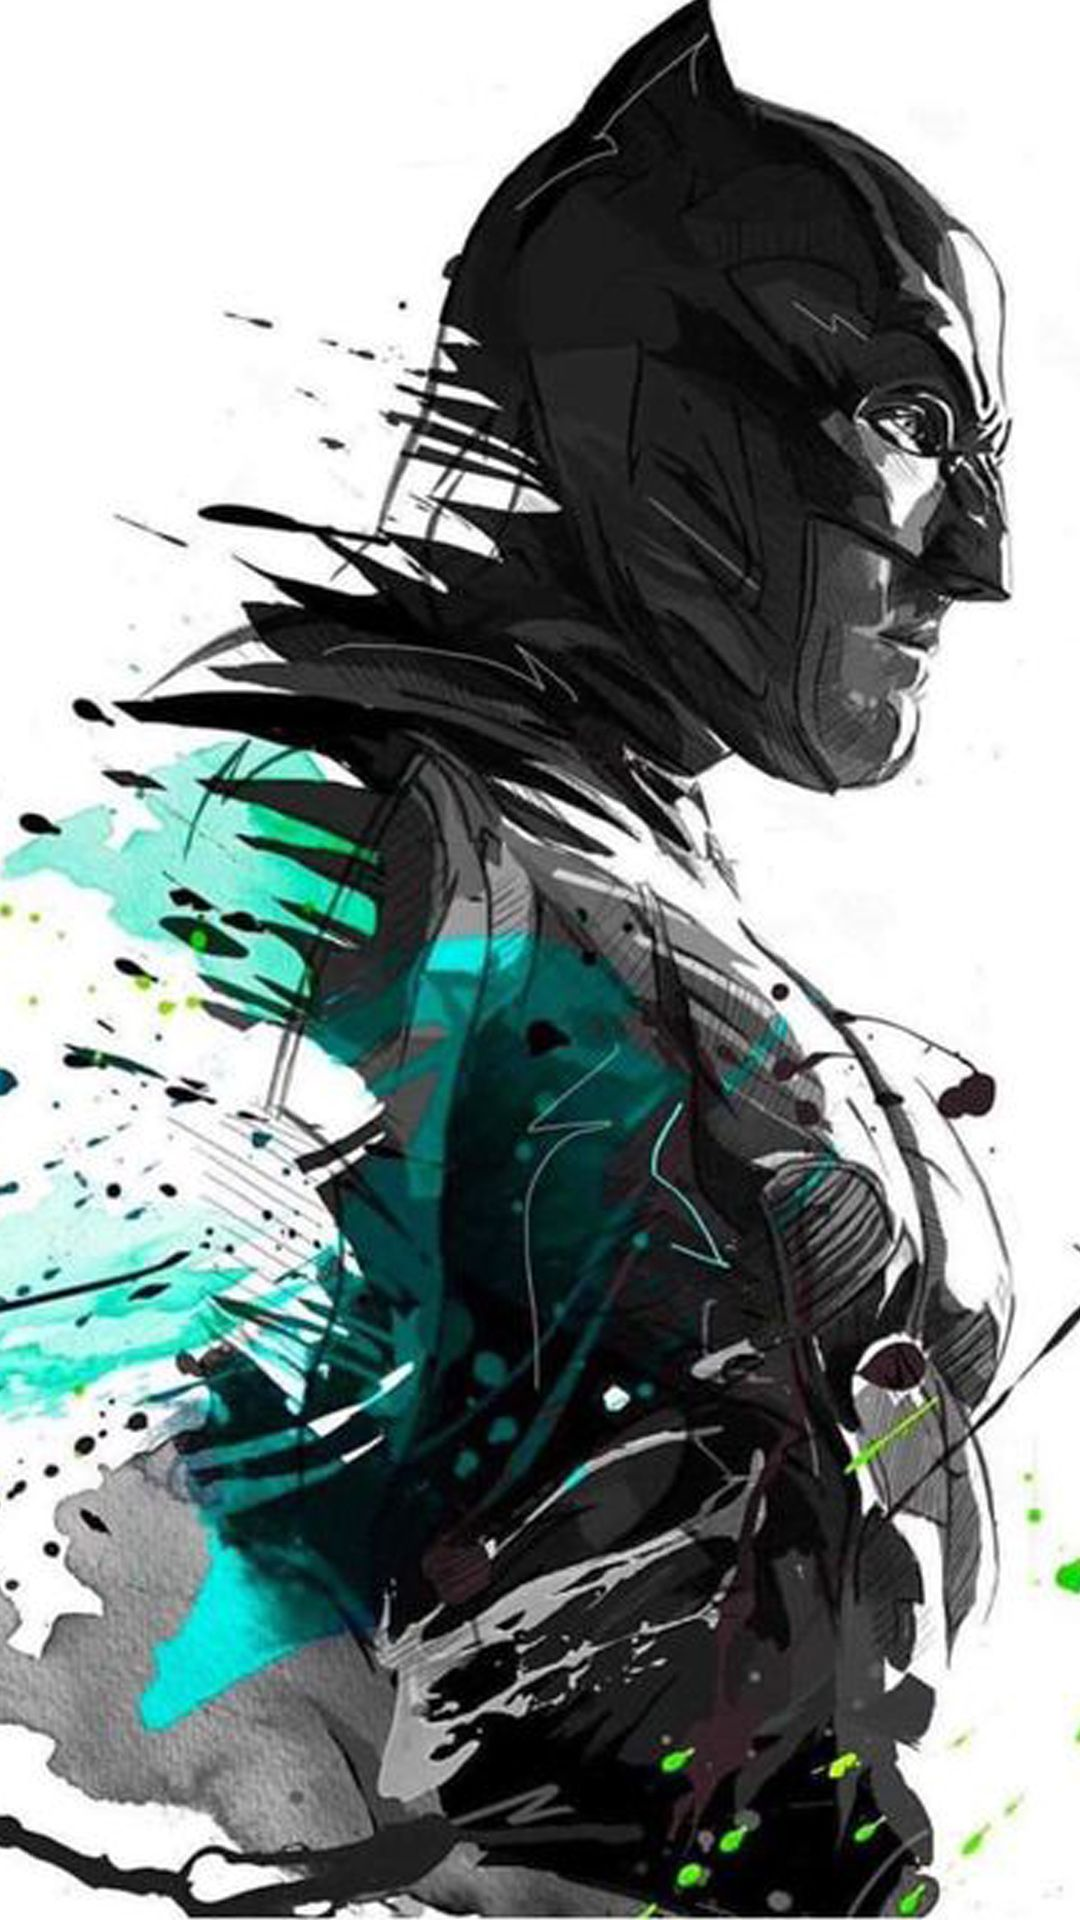 Cool Batman Hd Wallpapers 1080p Free Quality Wallpaper For Iphone